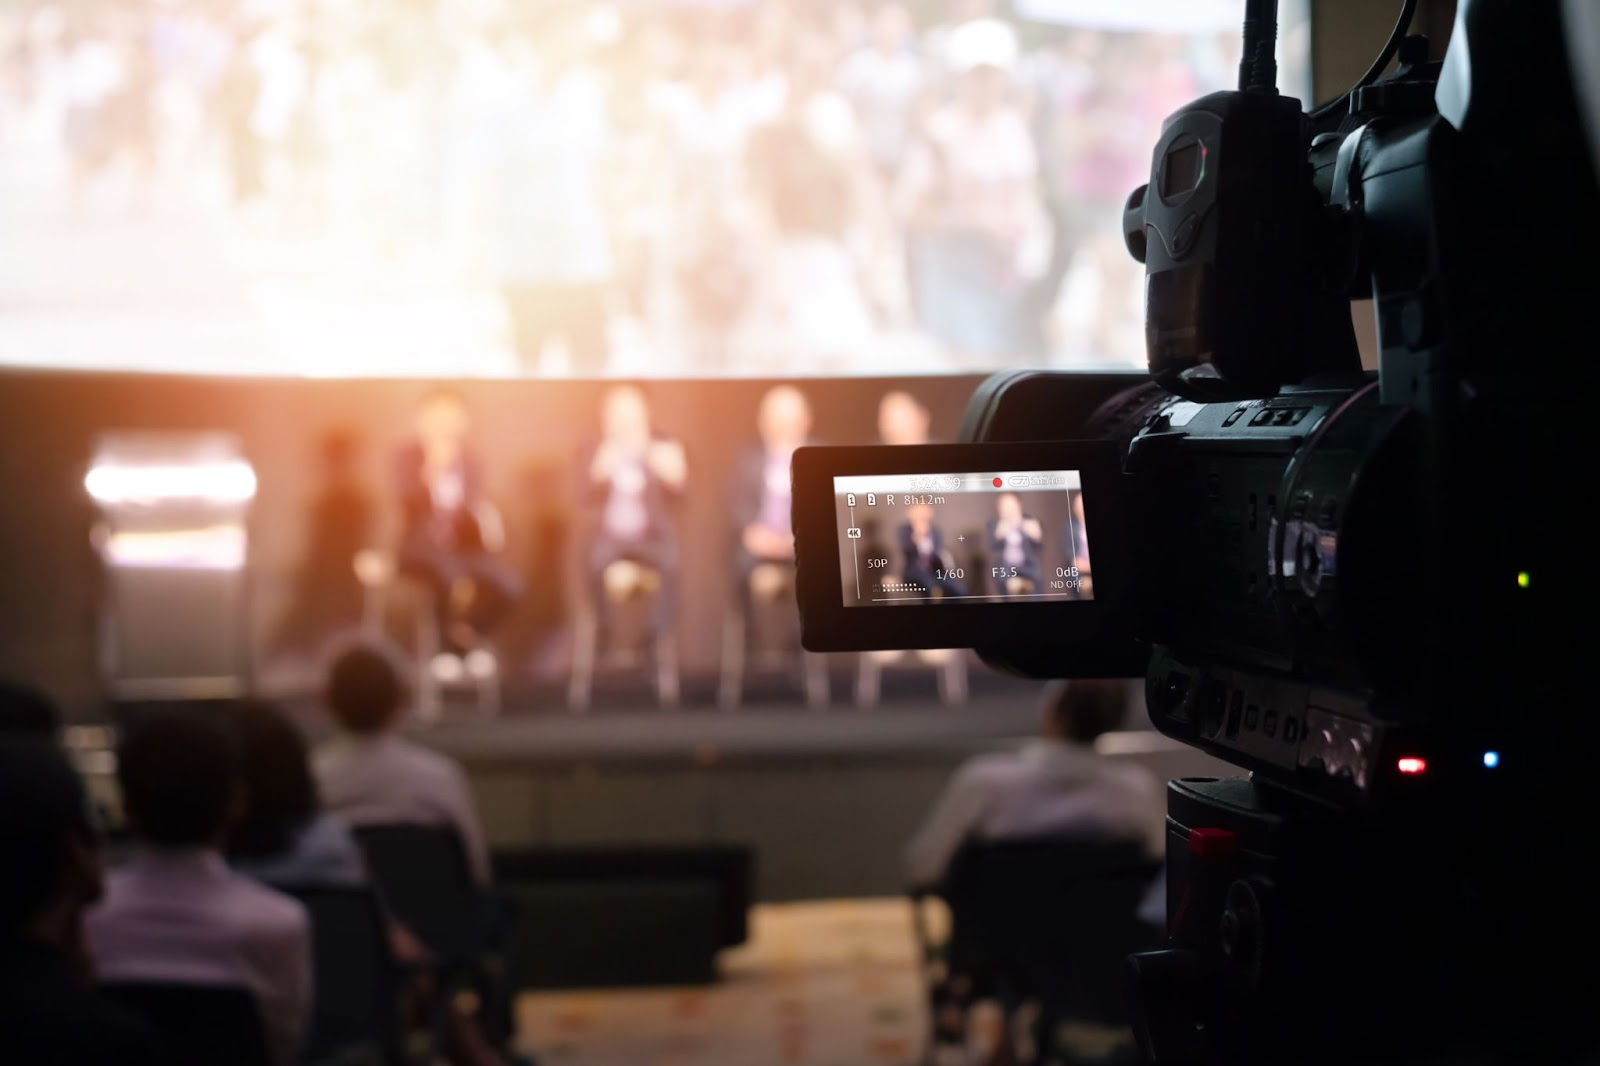 Pictured is a video camera filming a stage. This image is used to educate readers on how they can safely insure their rented gear through gear rental insurance.